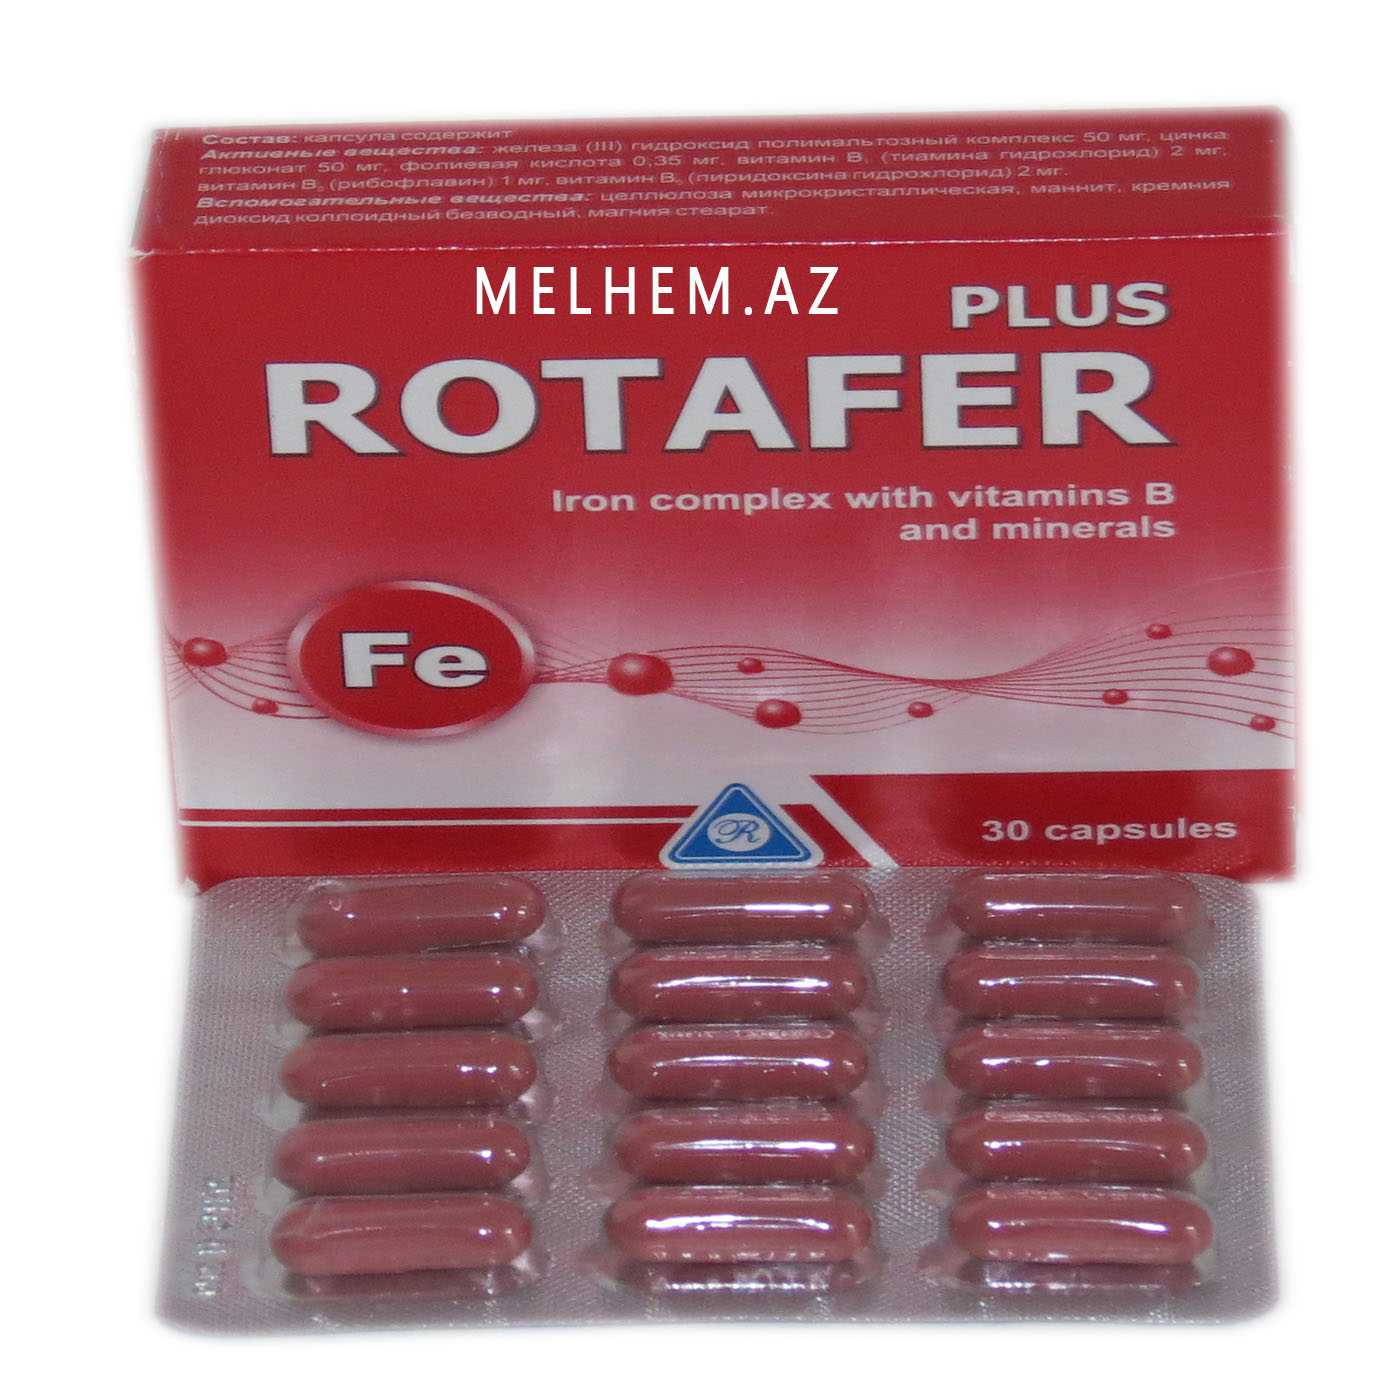 ROTAFER PLUS